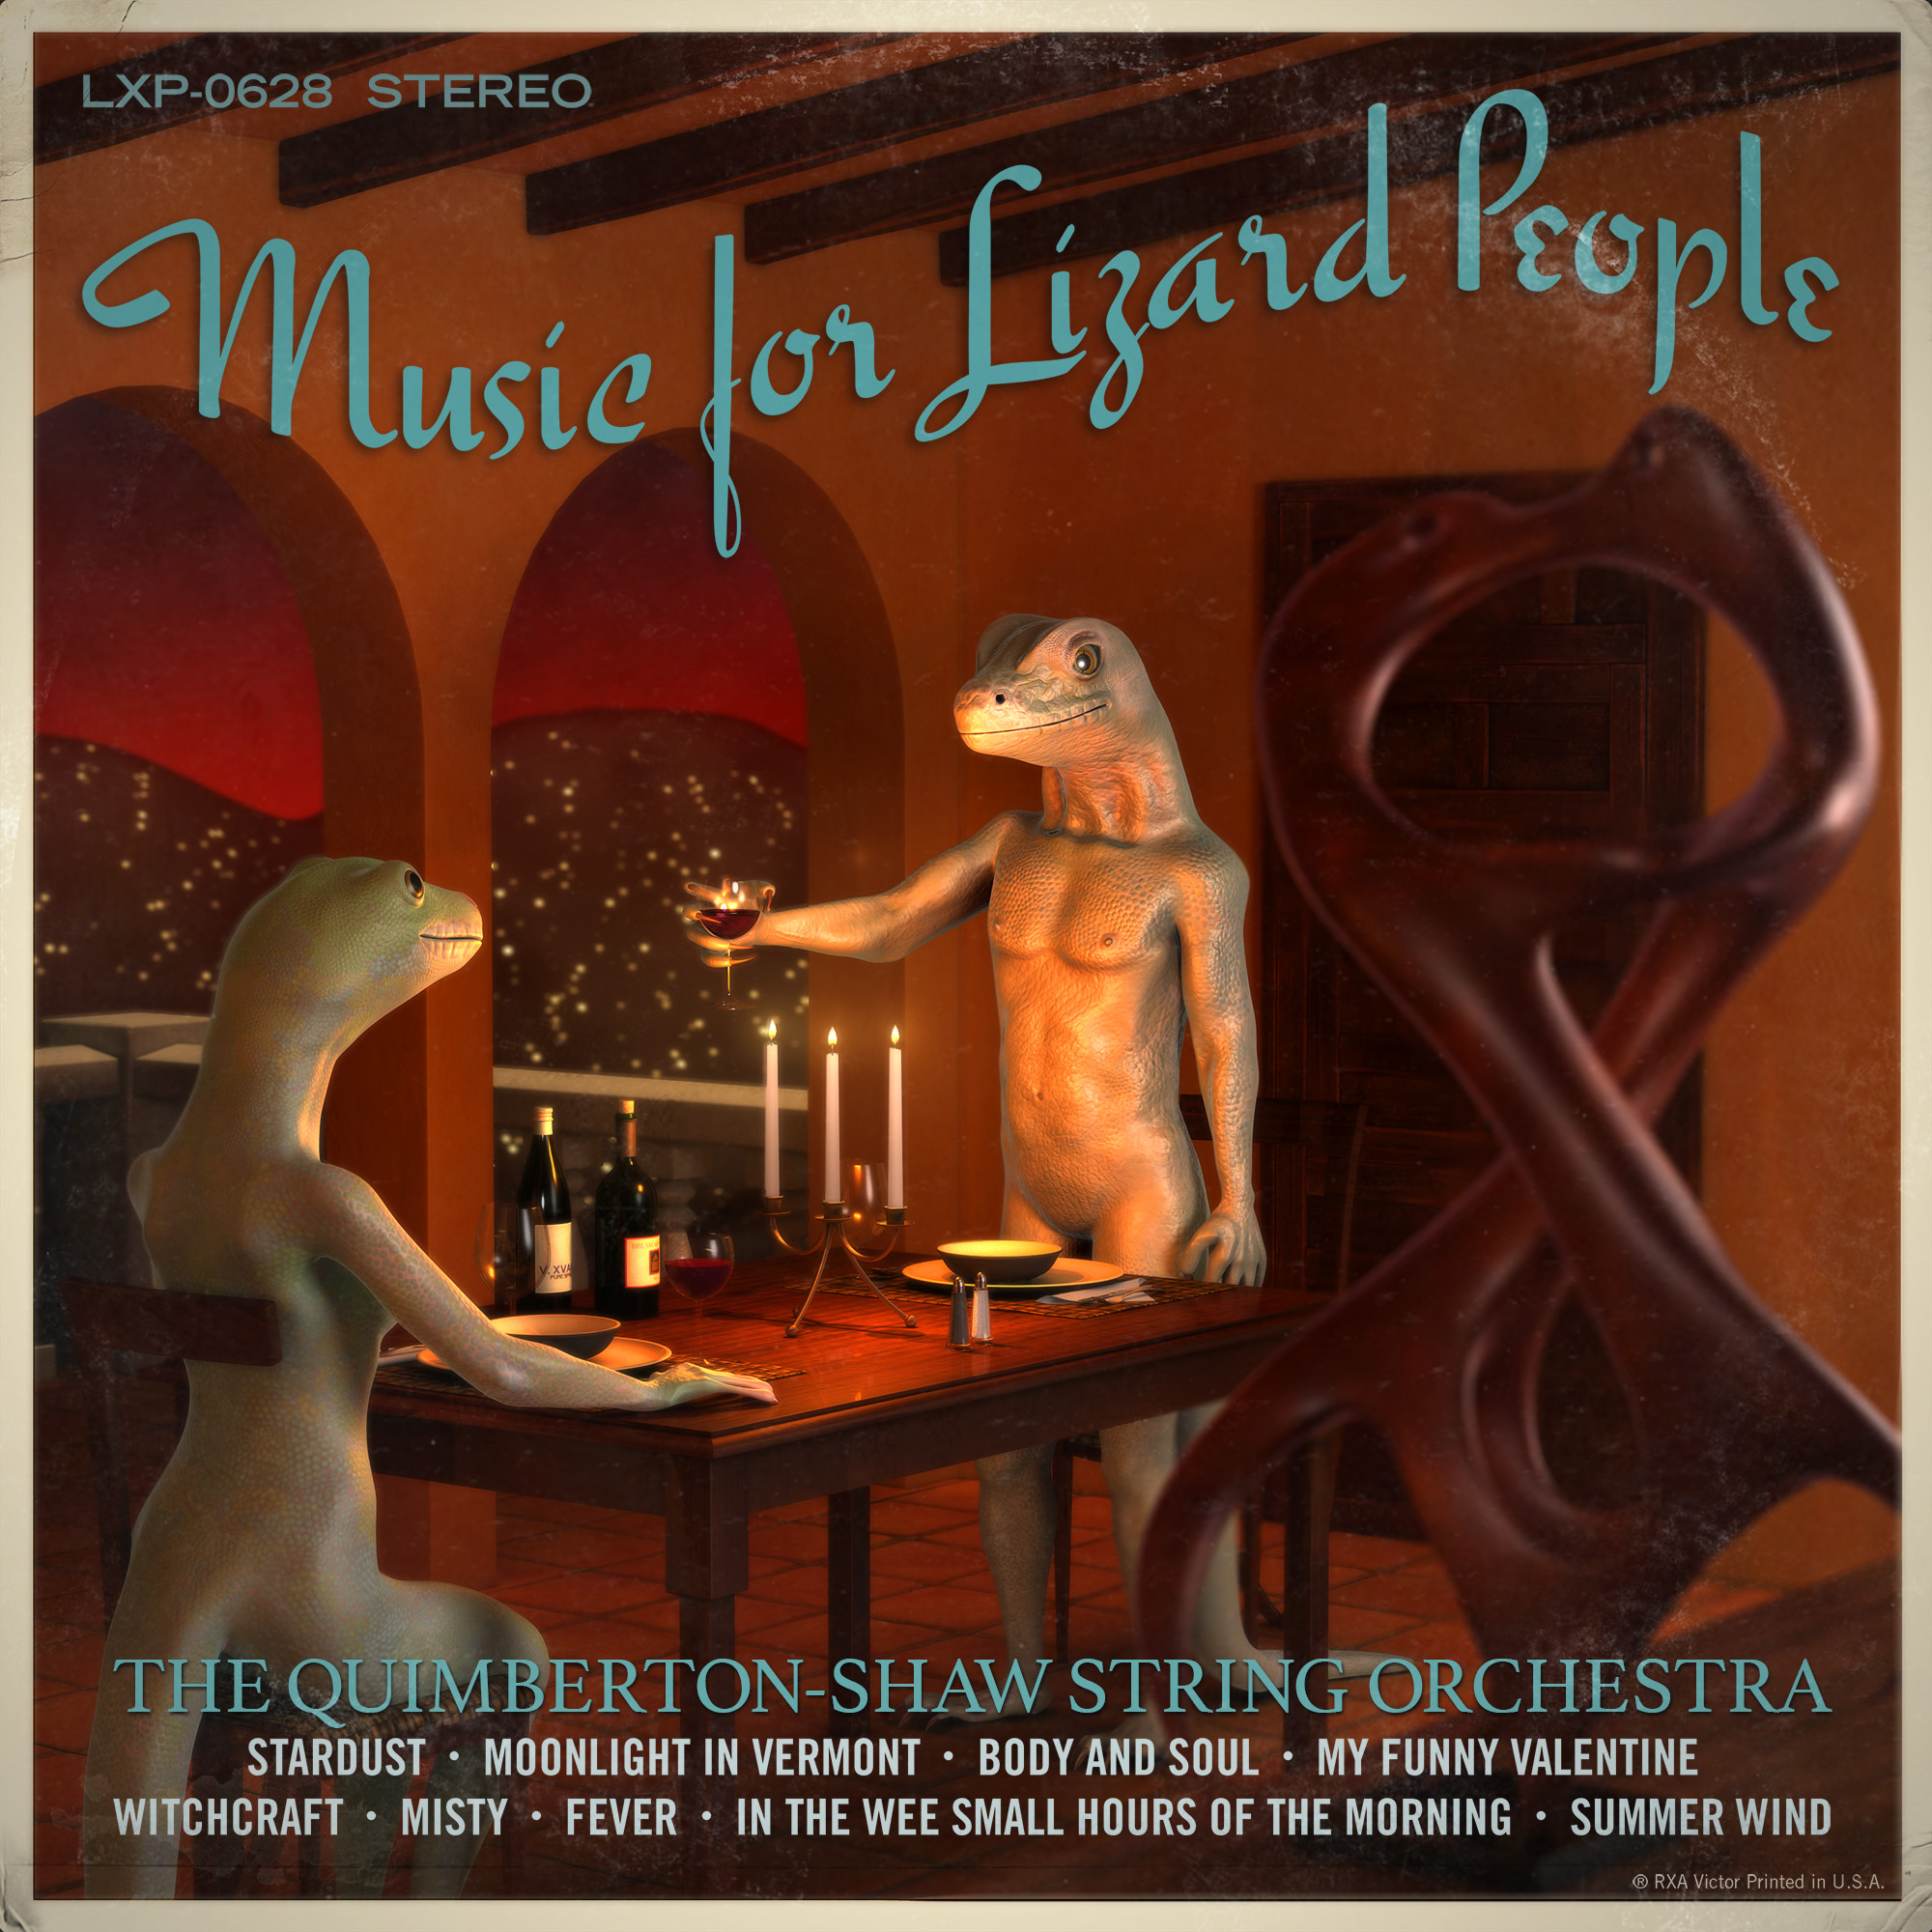 Music for Lizard People